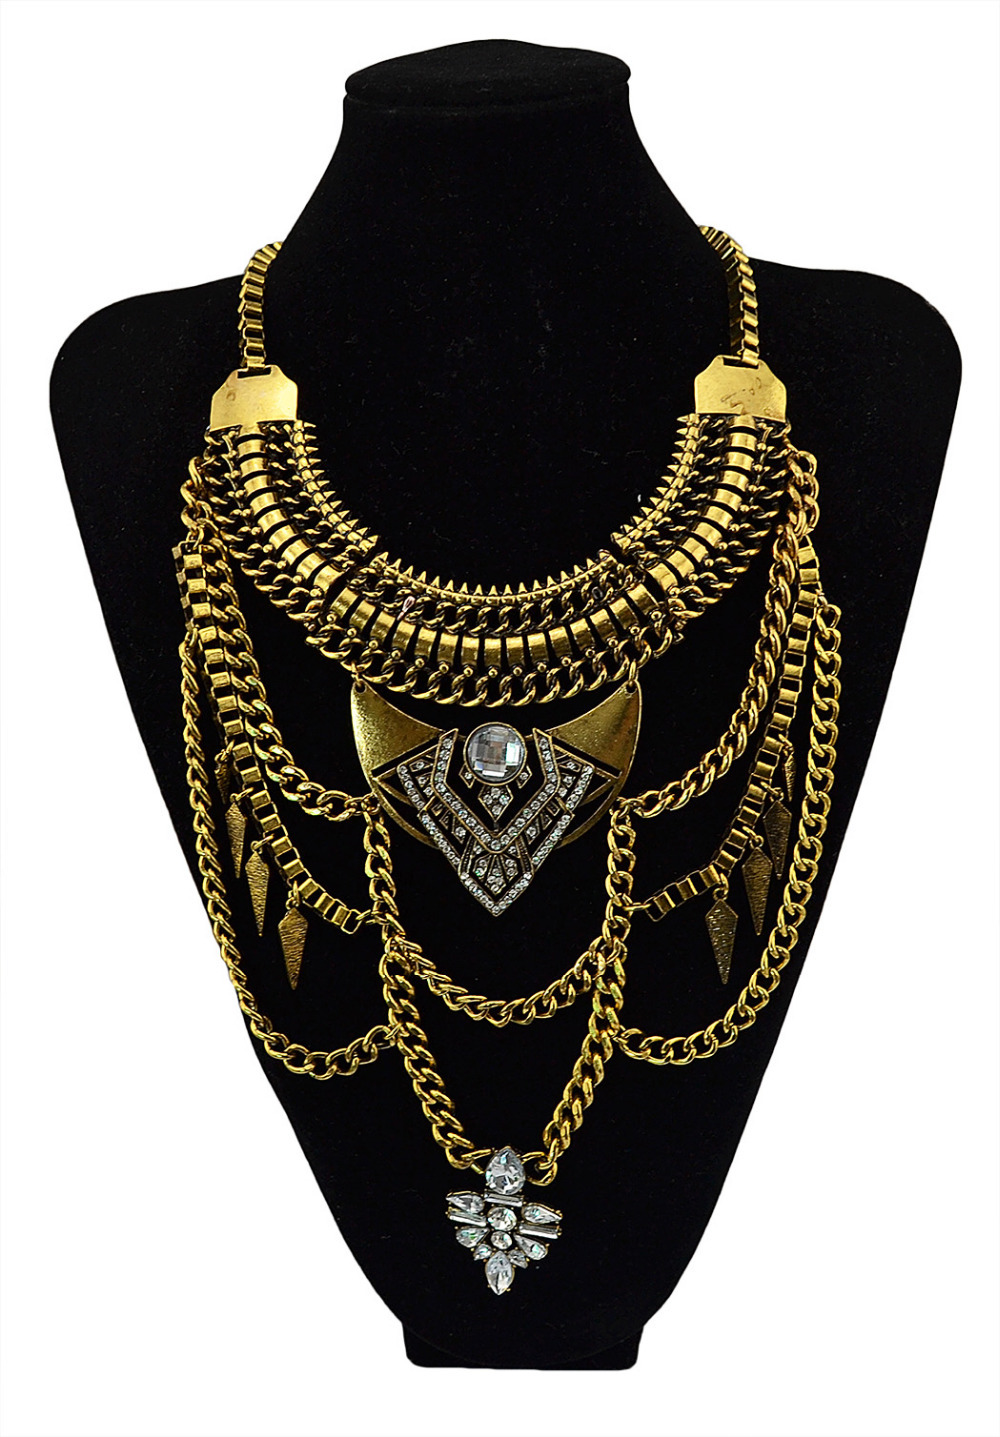 Boho Vintage Silver Multi layer Chains Necklace Gold Perfumes Jewelry Gypsy Charm Crystal Rhinestone Flower Pendants